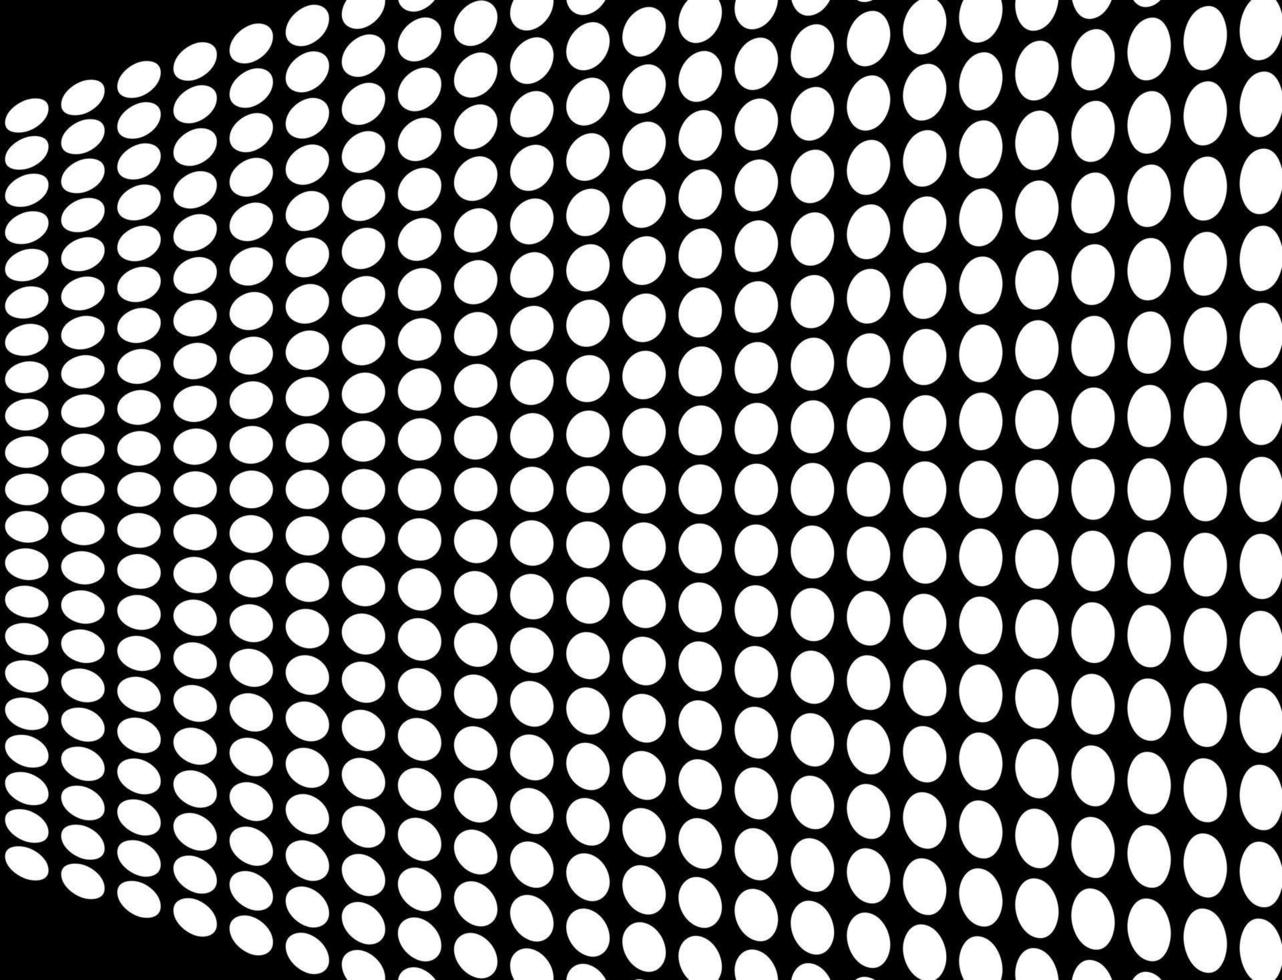 Abstract halftone wave dotted background vector